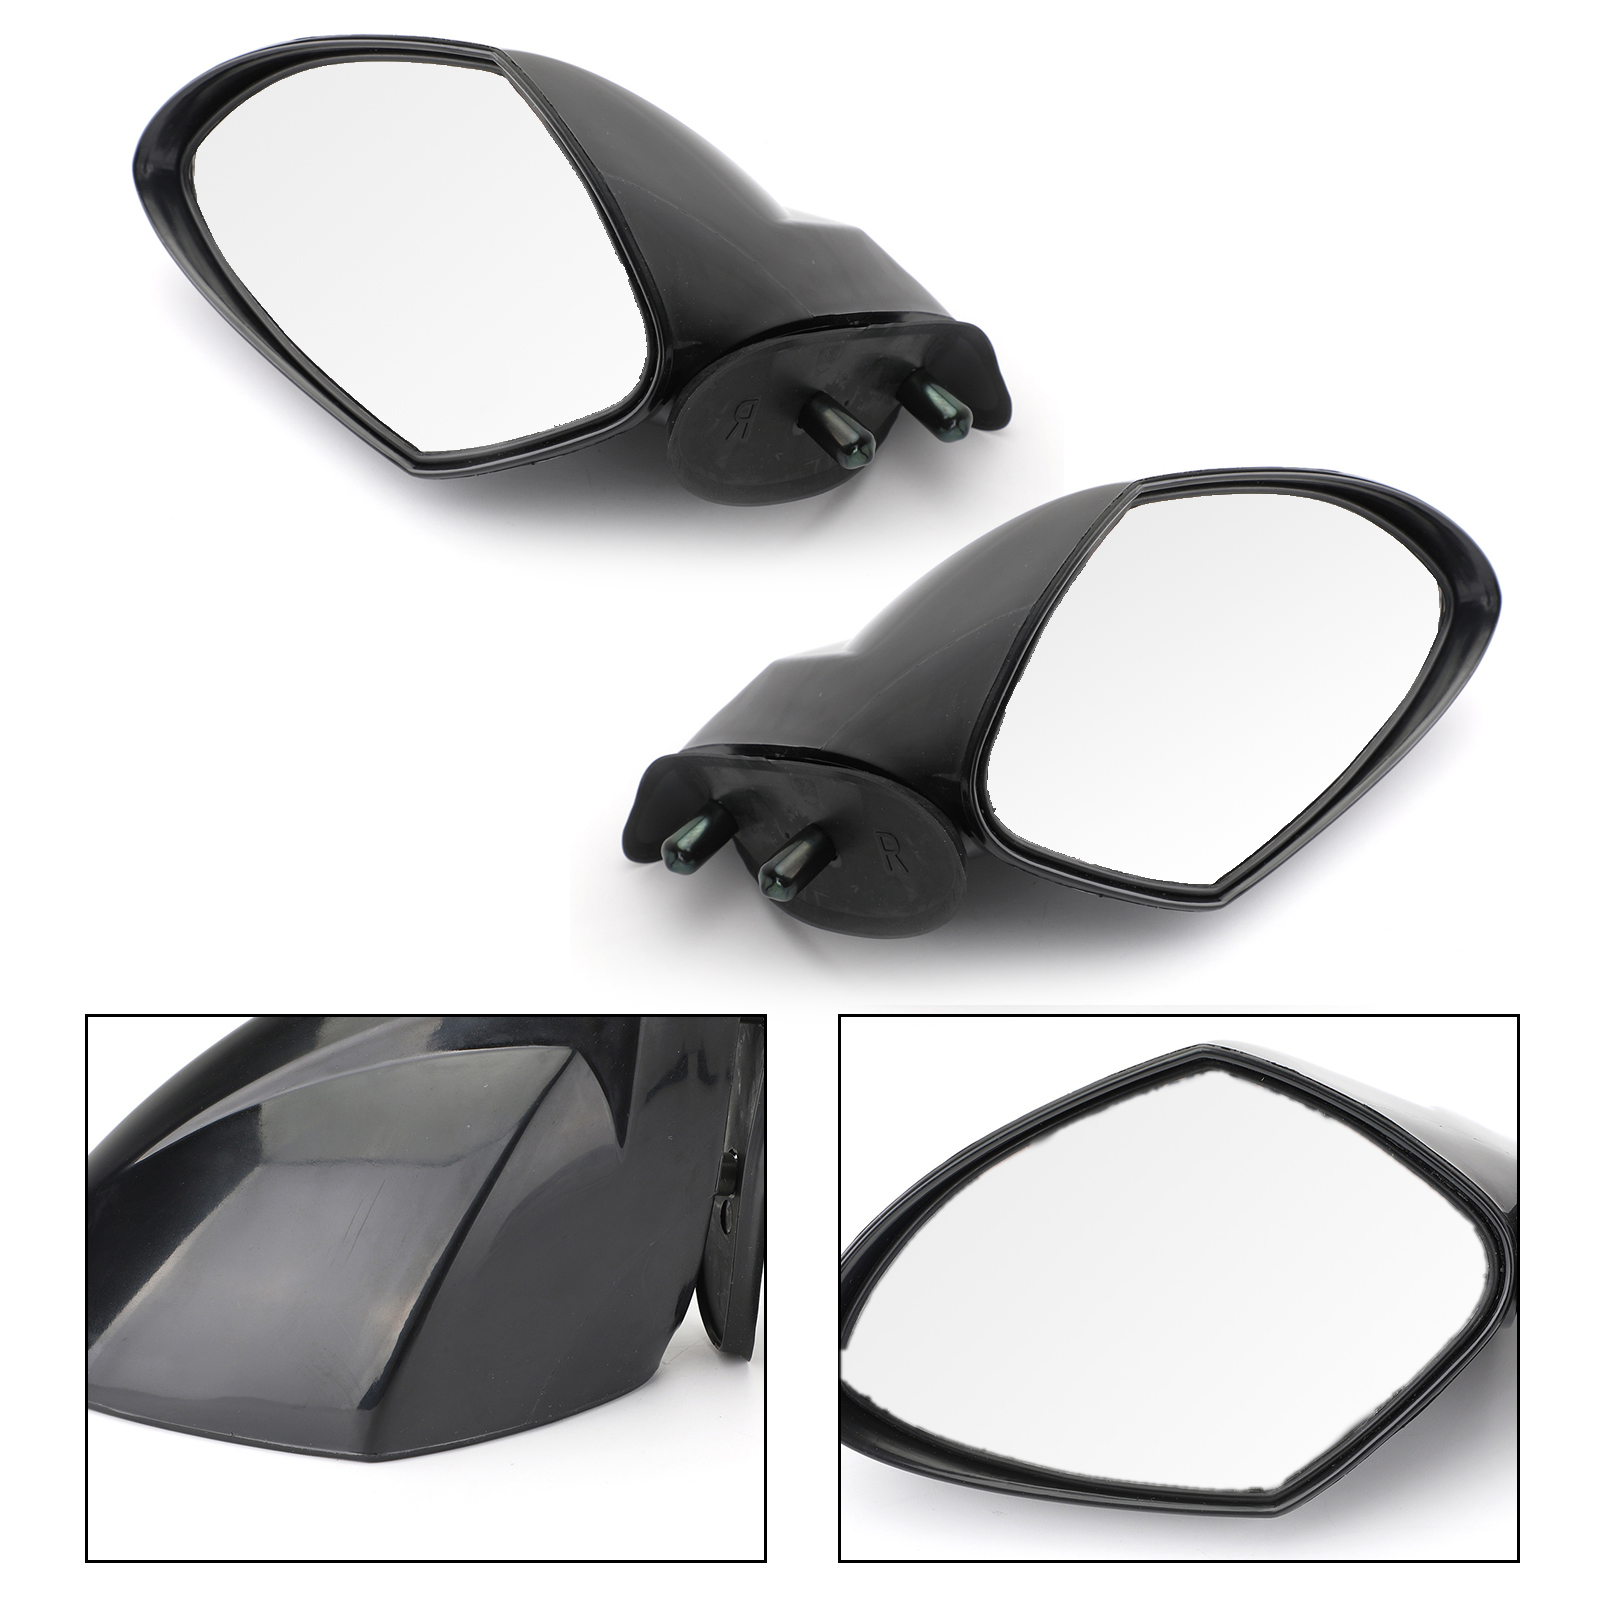 Artudatech Rearview Side Mirrors Pair For Yamaha WaveRunner VX VXR V1 VXS Cruiser Deluxe Sport 2005-2009 VX 110